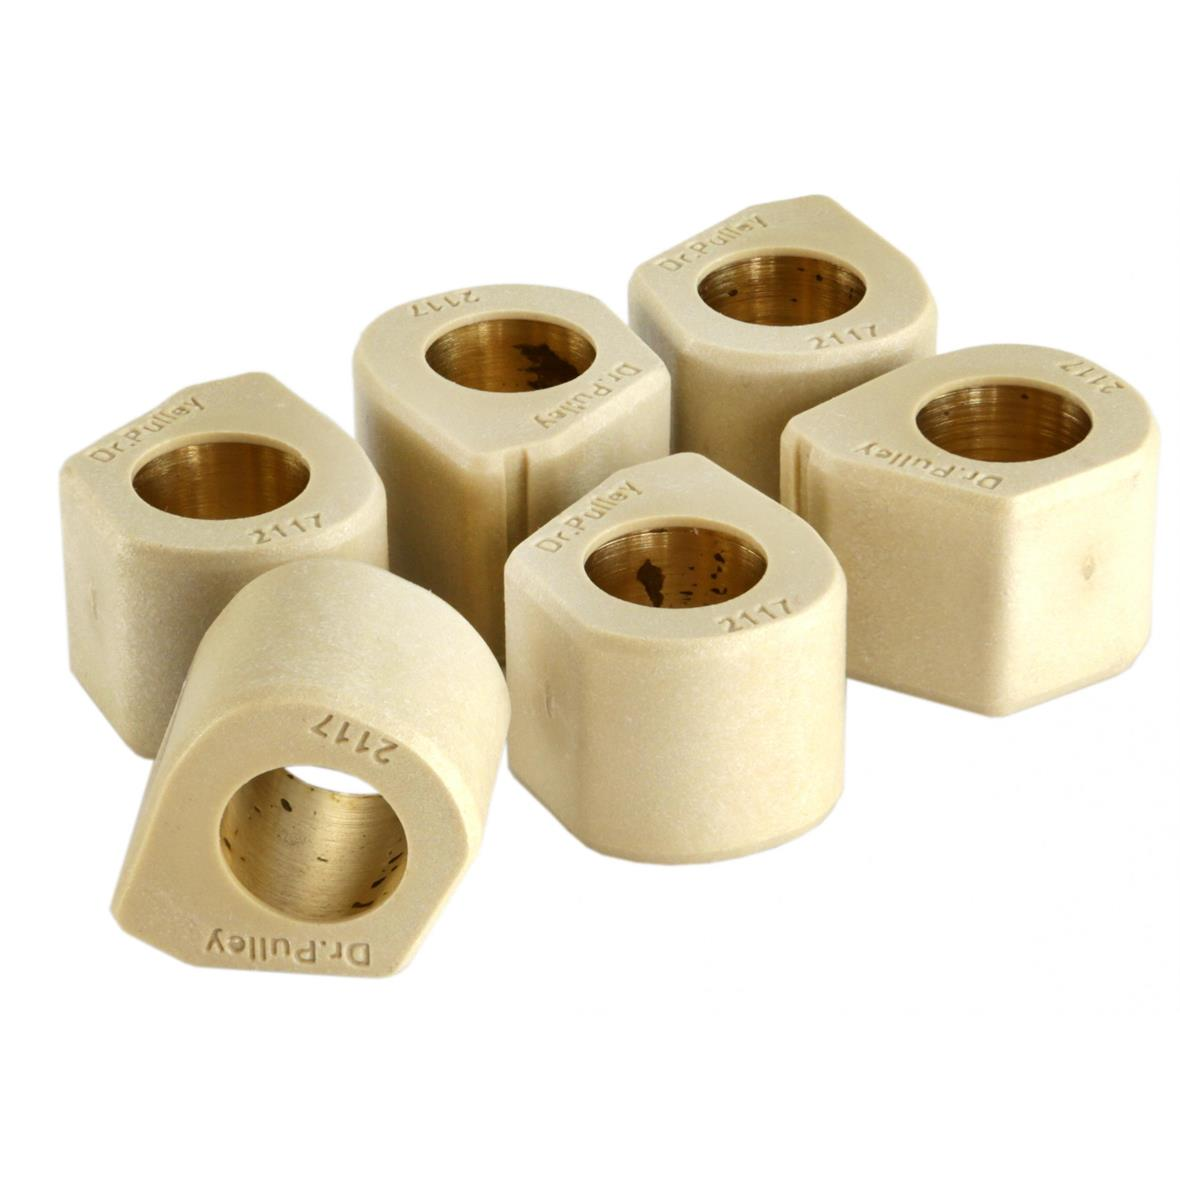 Product Image for 'Variator Rollers DR. PULLEY 16x13 mm 10,0gTitle'